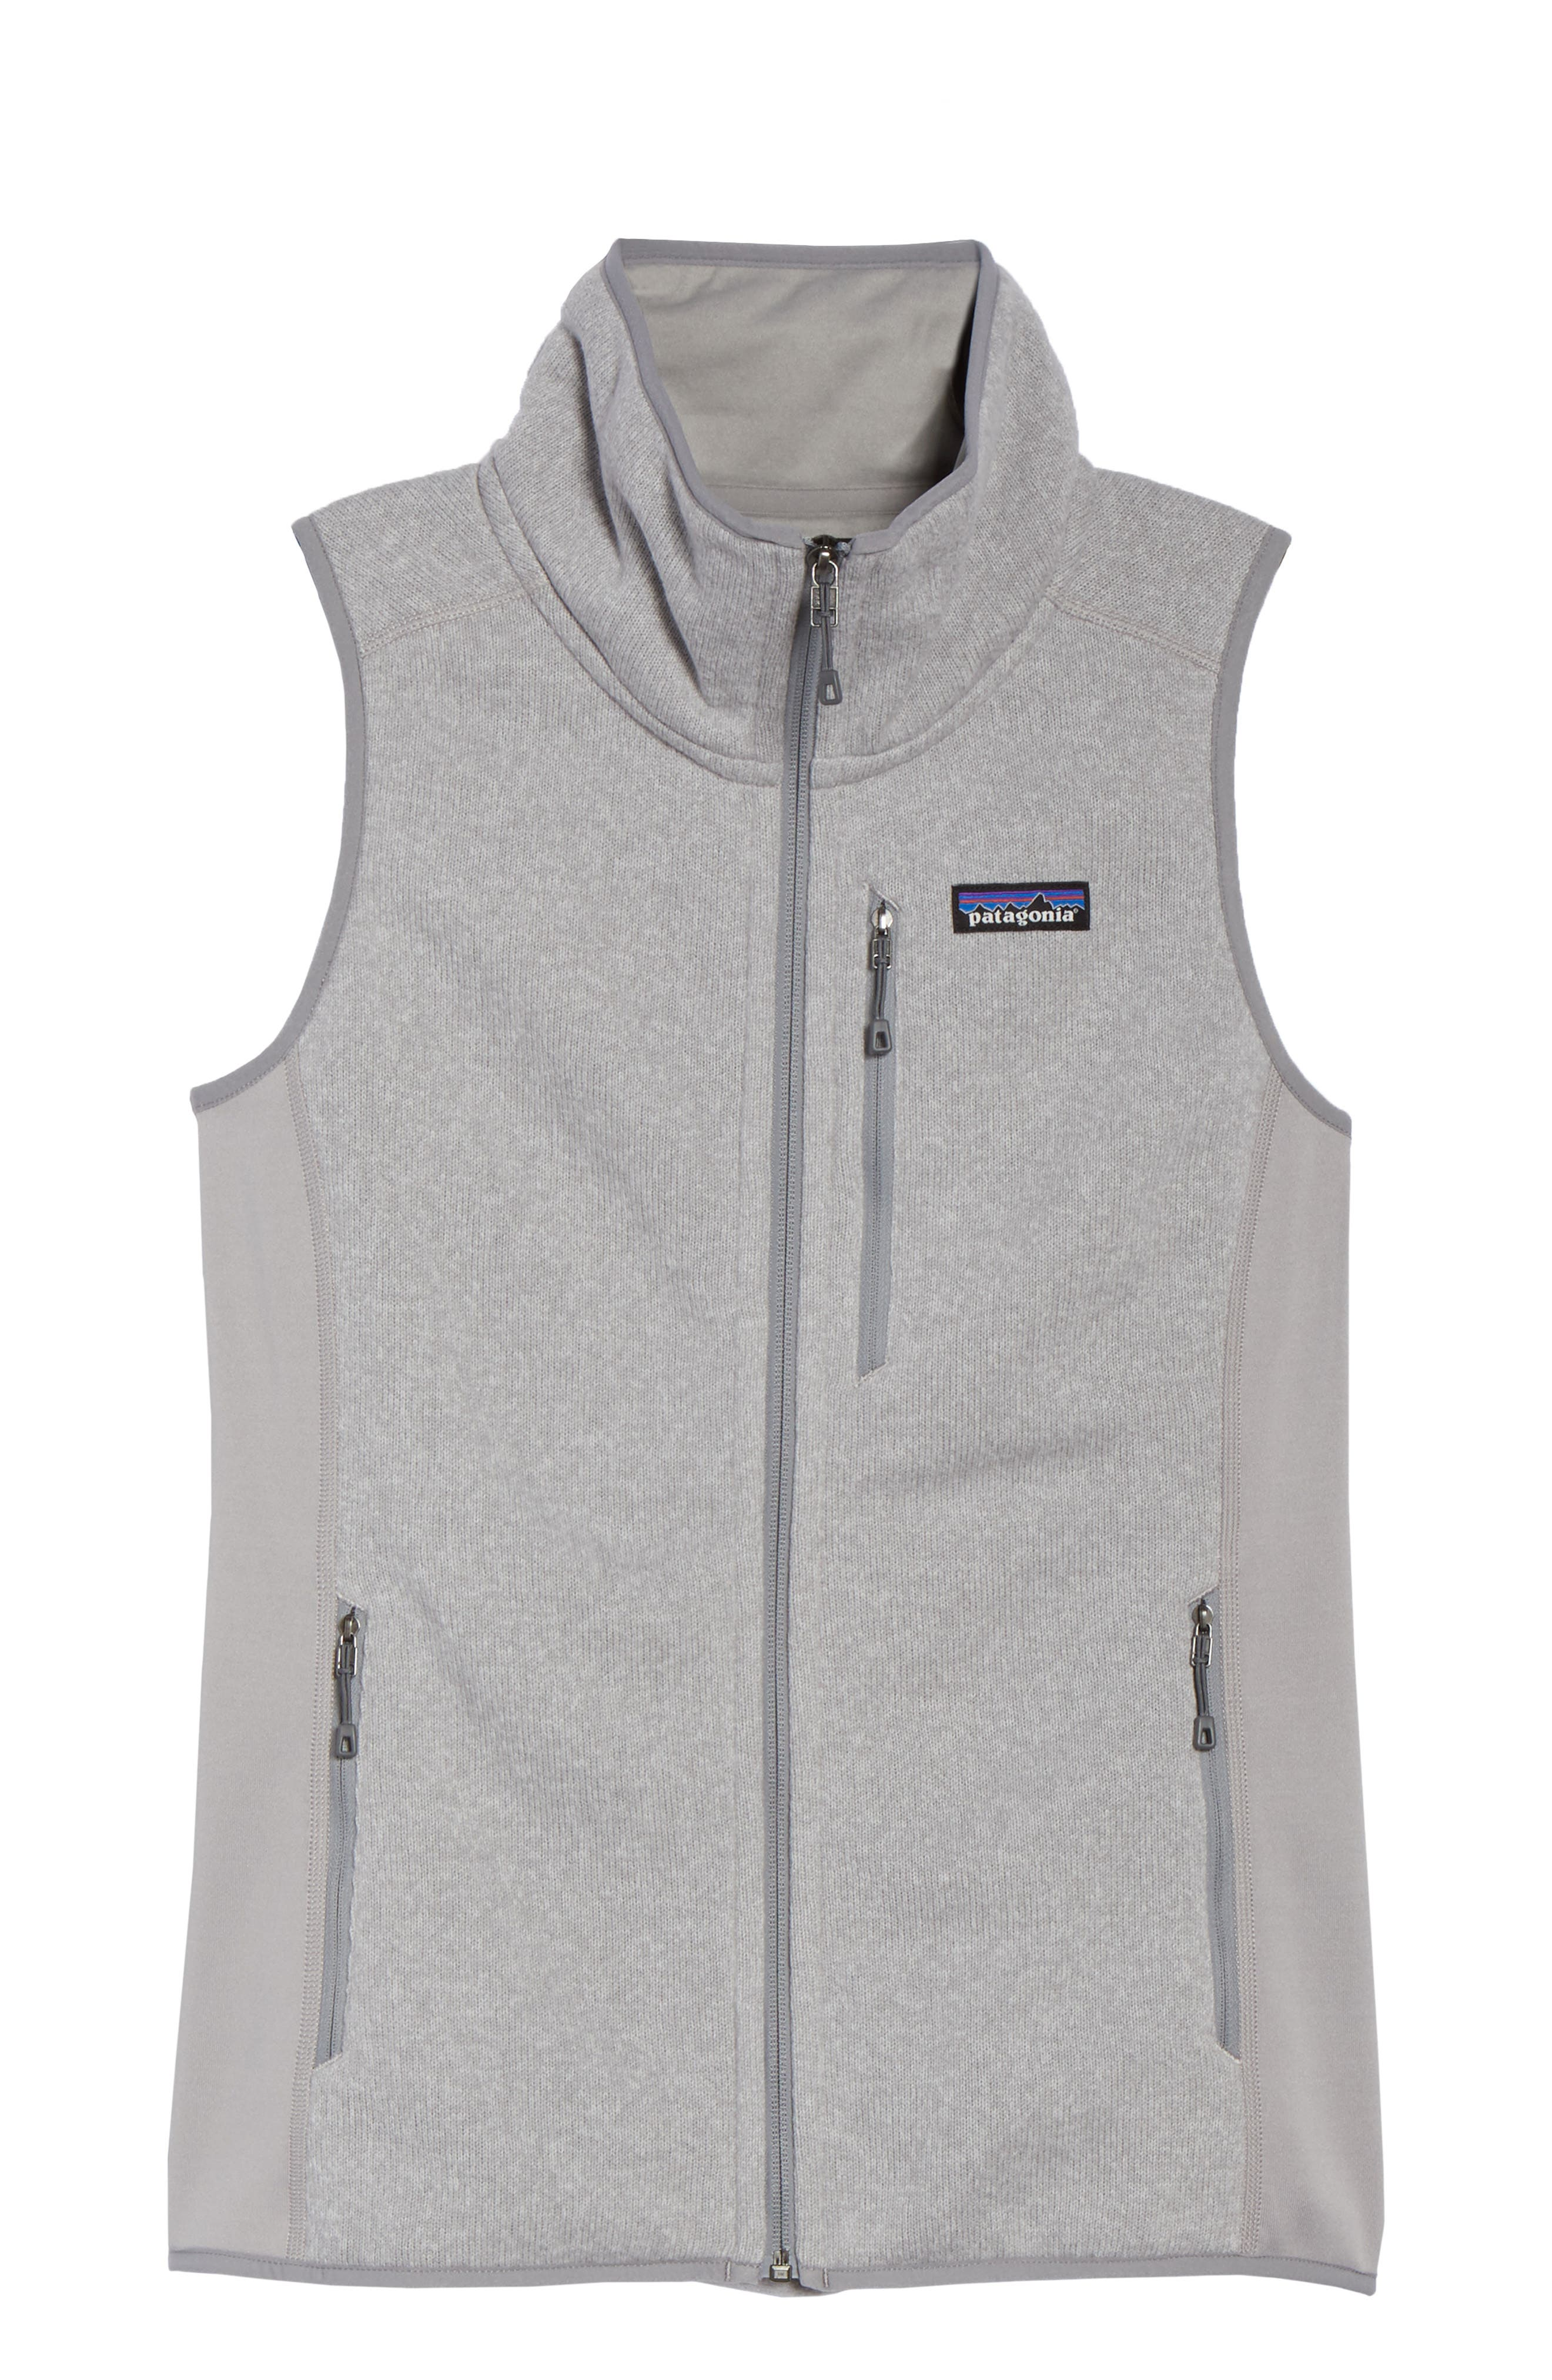 Performance Better Sweater Vest,                             Alternate thumbnail 6, color,                             DRIFTER GREY